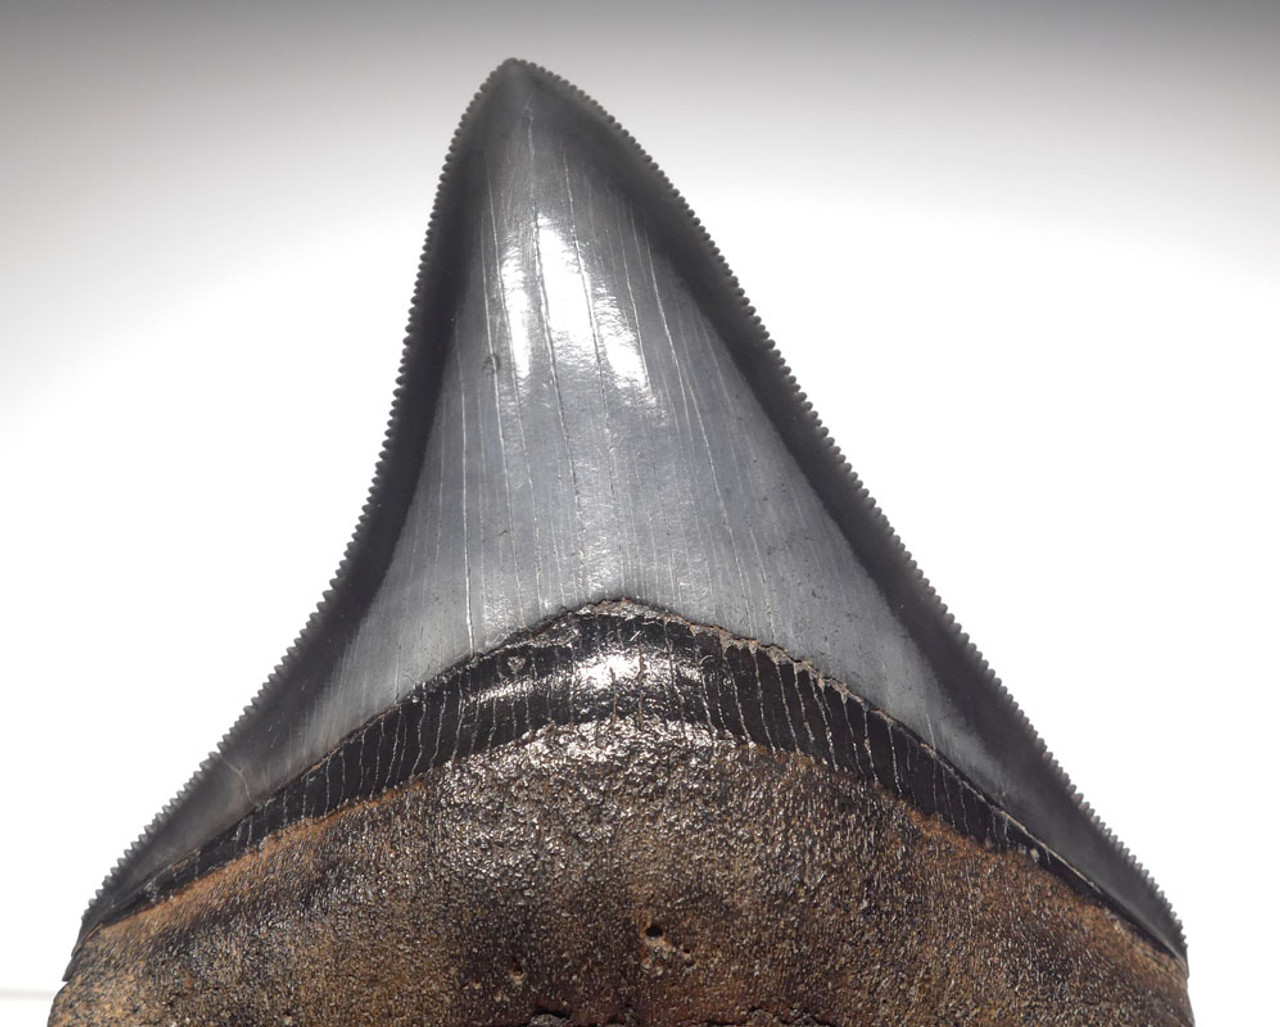 SH6-312 - FINEST GRADE 3.6 INCH CHATOYANT BLUE-GRAY MEGALODON SHARK TOOTH